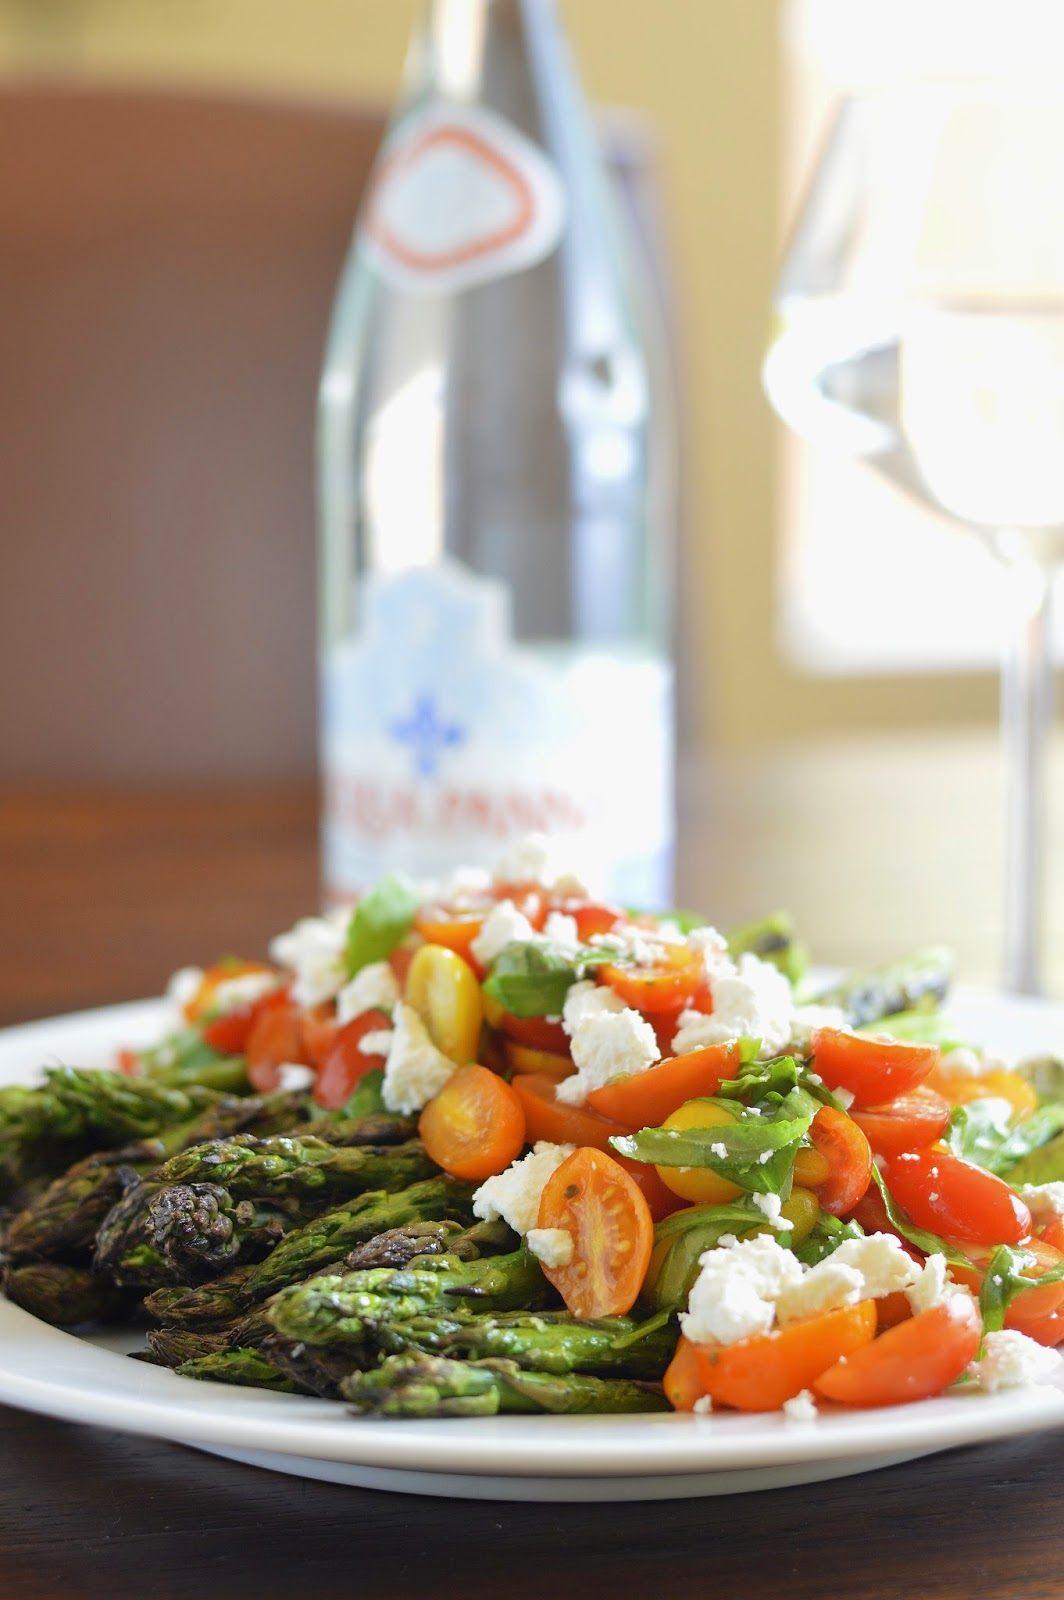 Grilled Asparagus with Tomato Salad and Goat Cheese | Virtually ...